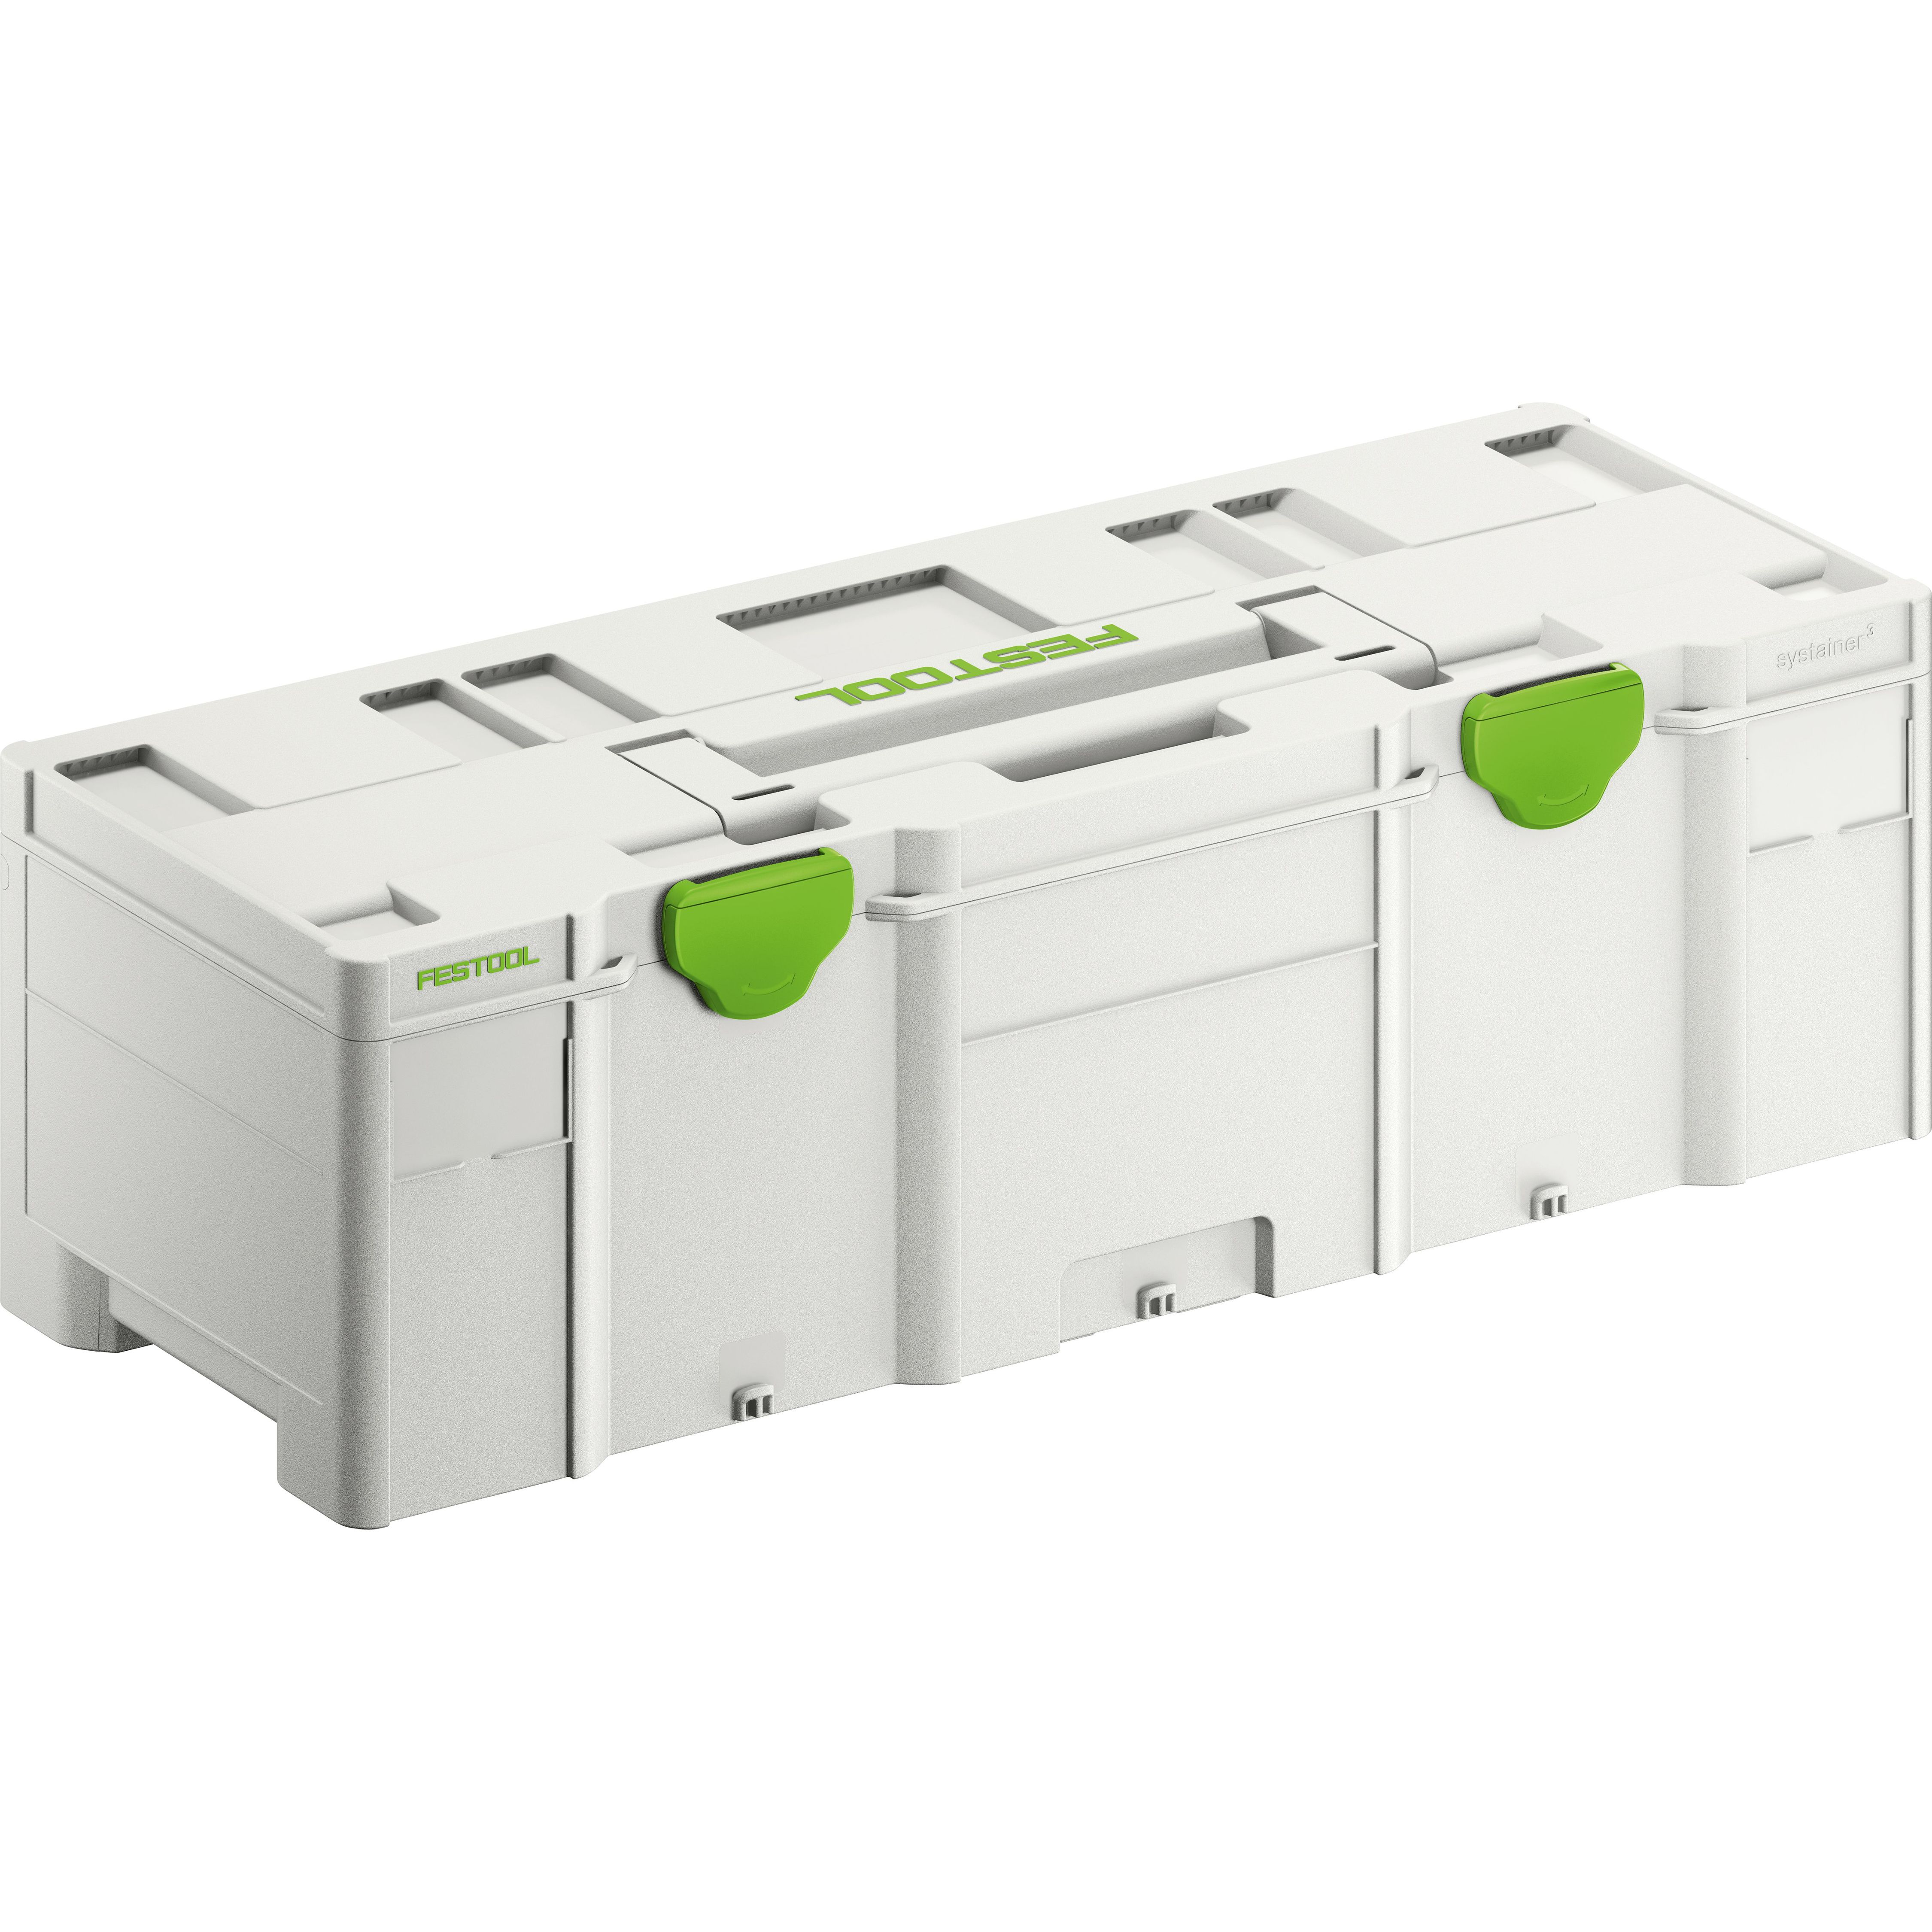 Festool SYS3 XXL 237 Systainer